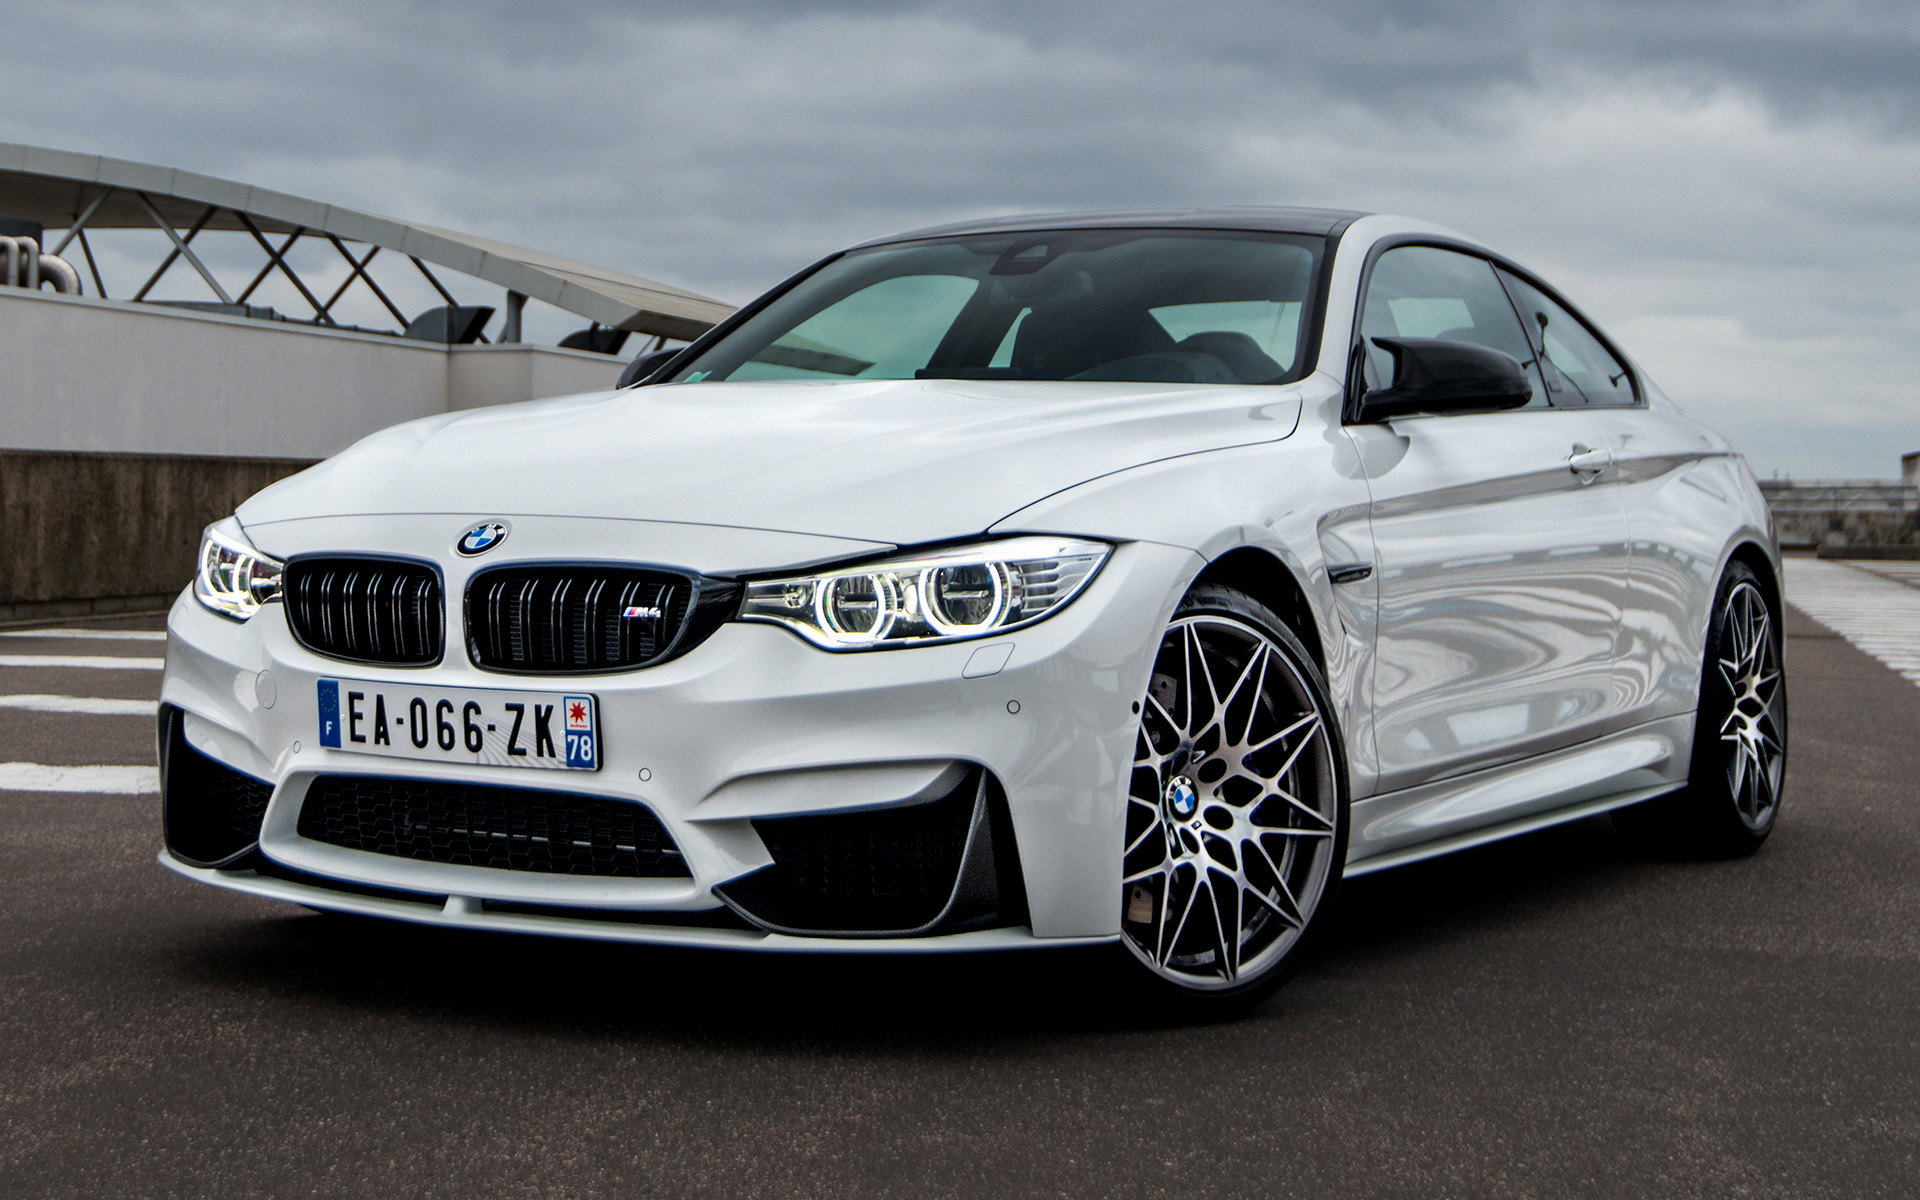 2016 Bmw M4 Coupe Tour Auto Edition Wallpapers And Hd